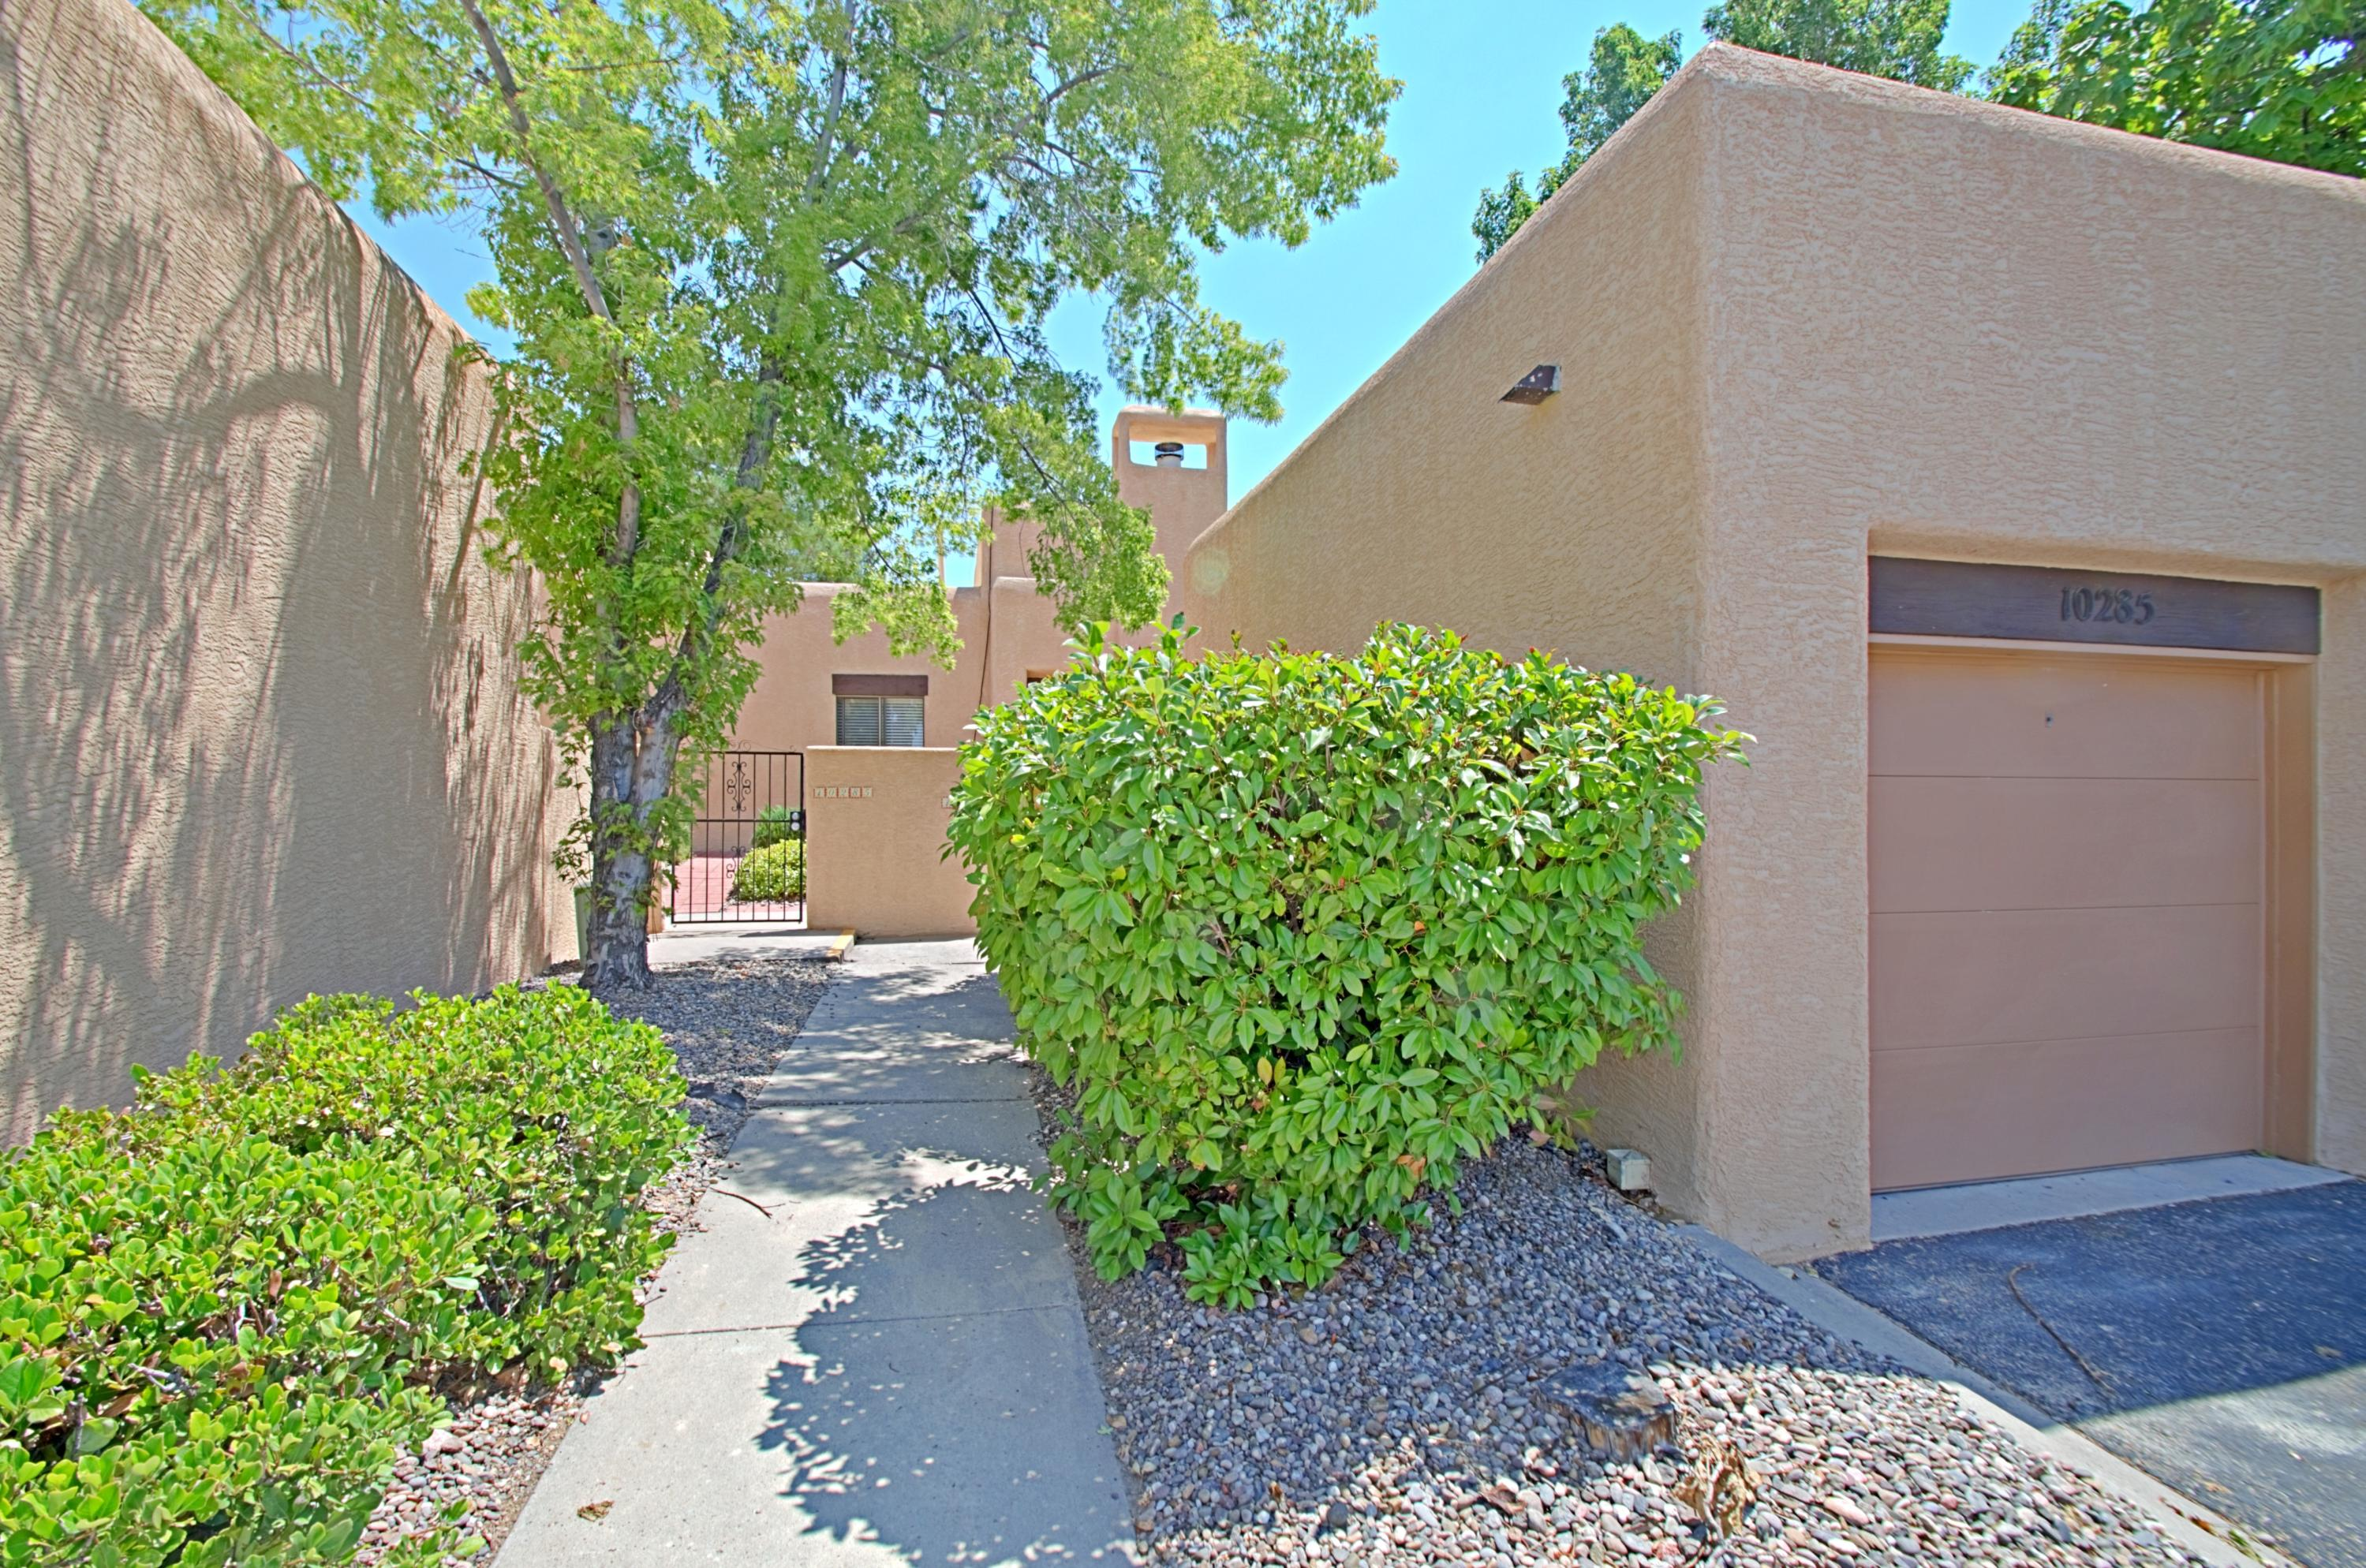 This condo has great views of the Sandias which makes it stand out from the others.  Large outdoor patio area with access from Dining Area and Master Bedroom.  Covered and uncovered patio.  New Carpet and Refrigerator 2020.  New stucco entire unit, walls and garage 2020.  At time of purchase garage was dry walled and garage wooden door replaced with metal.  Broker is owner/broker for mother who was owner/occupant since 2008. New roof, evaporative cooler and hot water heater 2020. Previous owner stated verbally that , window coverings, microwave, oven, dishwaser, furnace,  washer and dryer were new approx 2005.